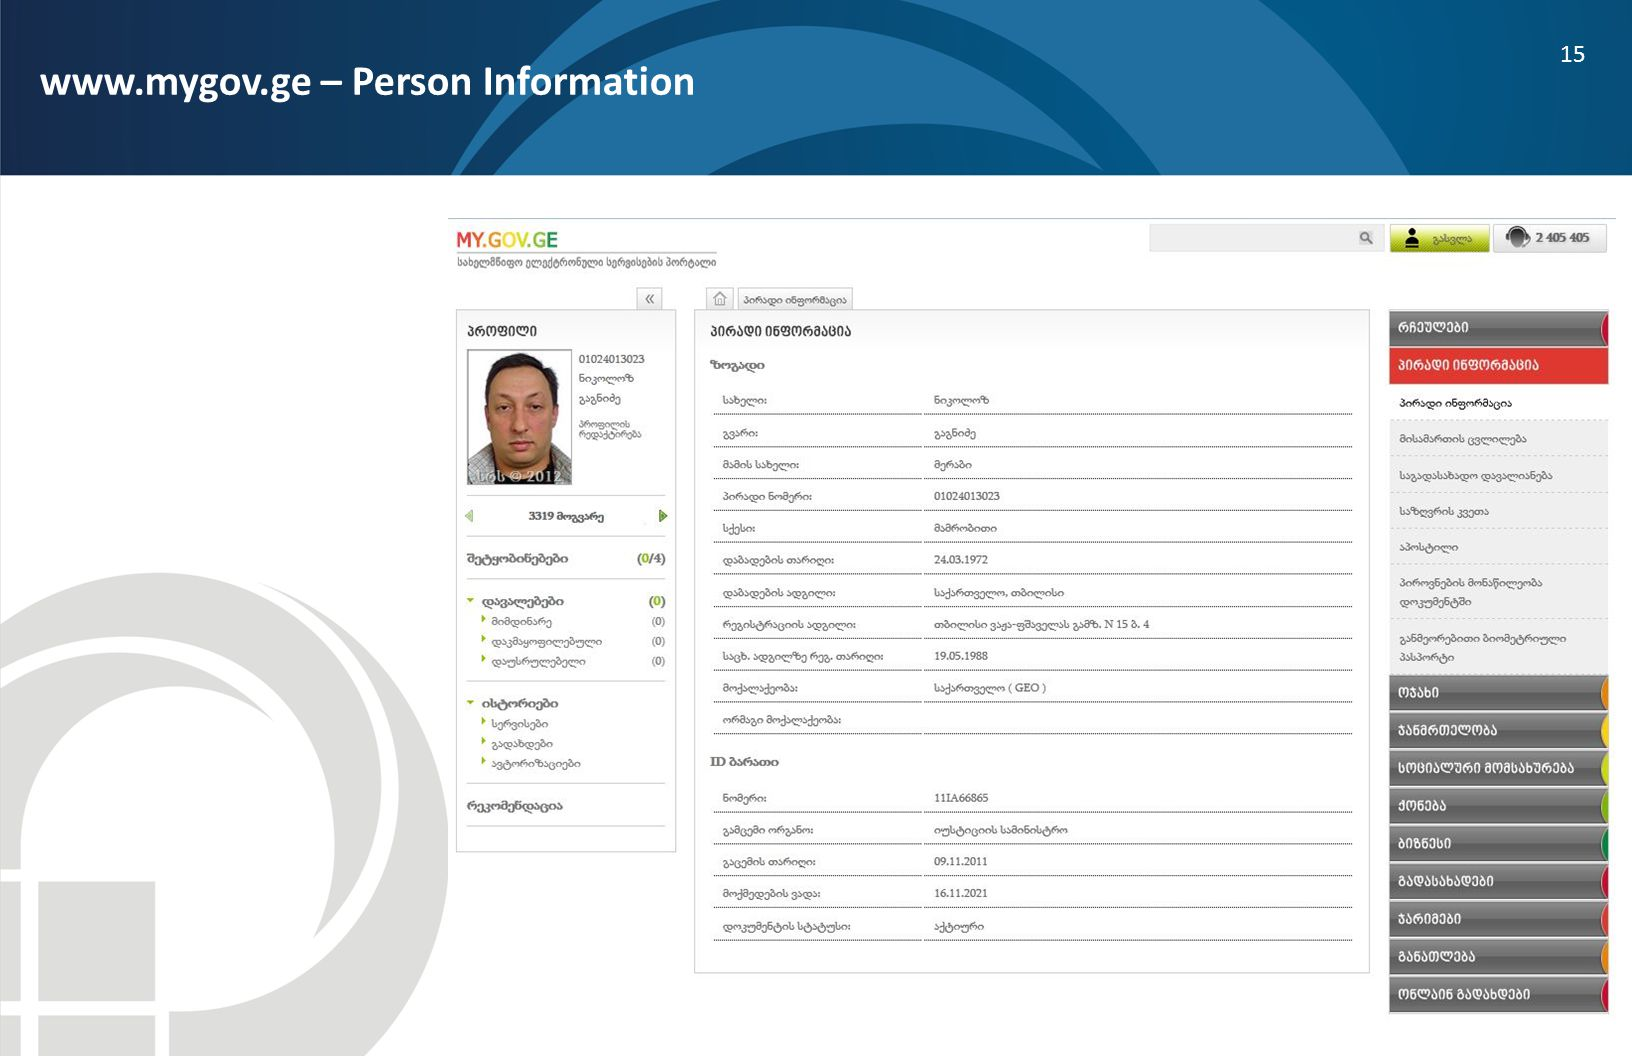 www.mygov.ge – Person Information